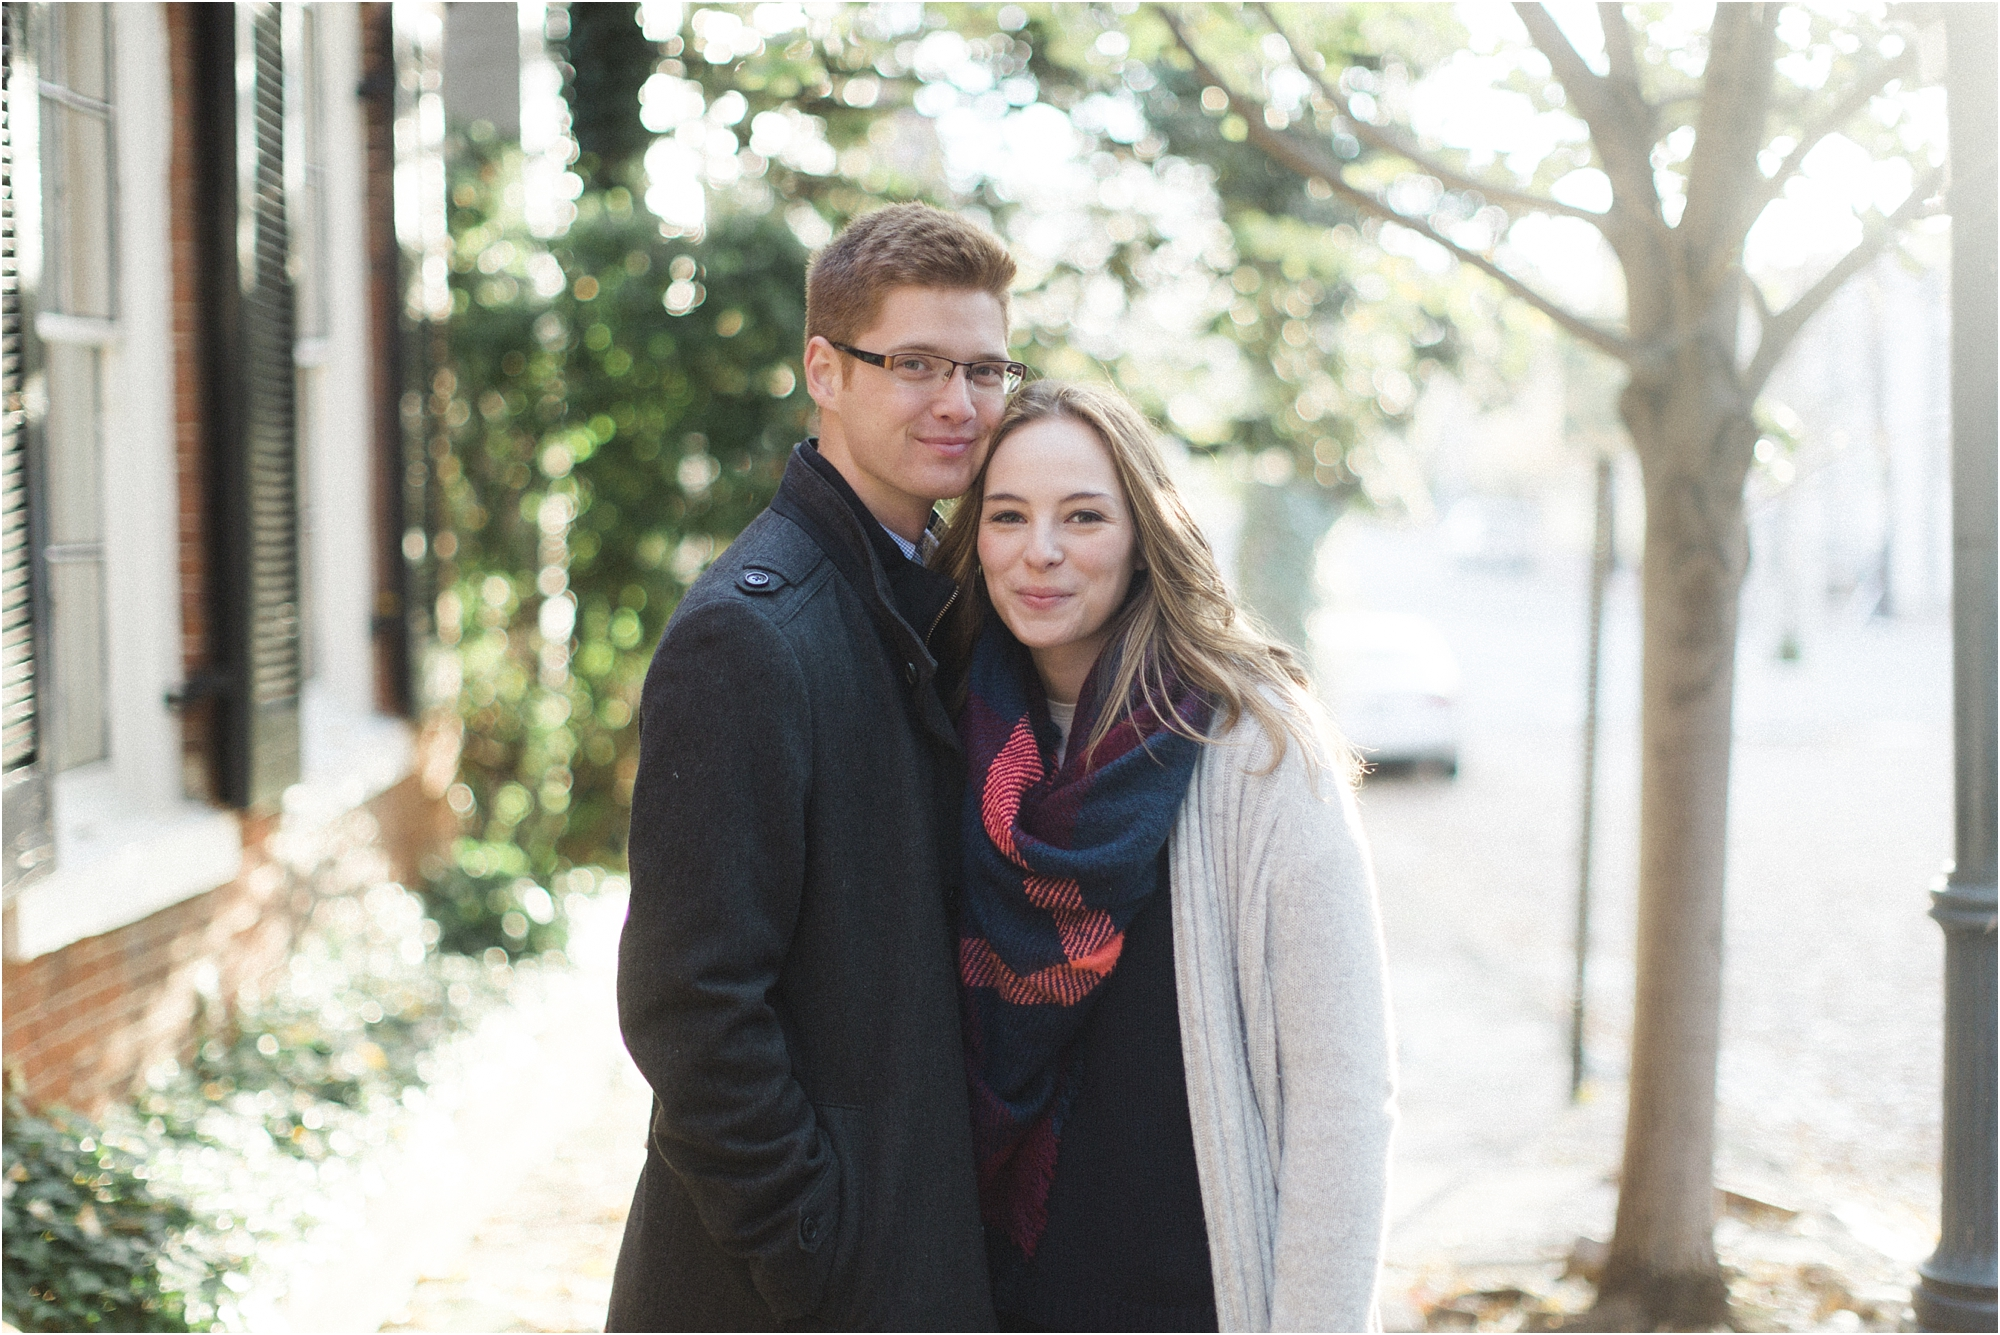 stephanie-yonce-photography-old-town-alexandria-fall-engagement-photos_0005.jpg